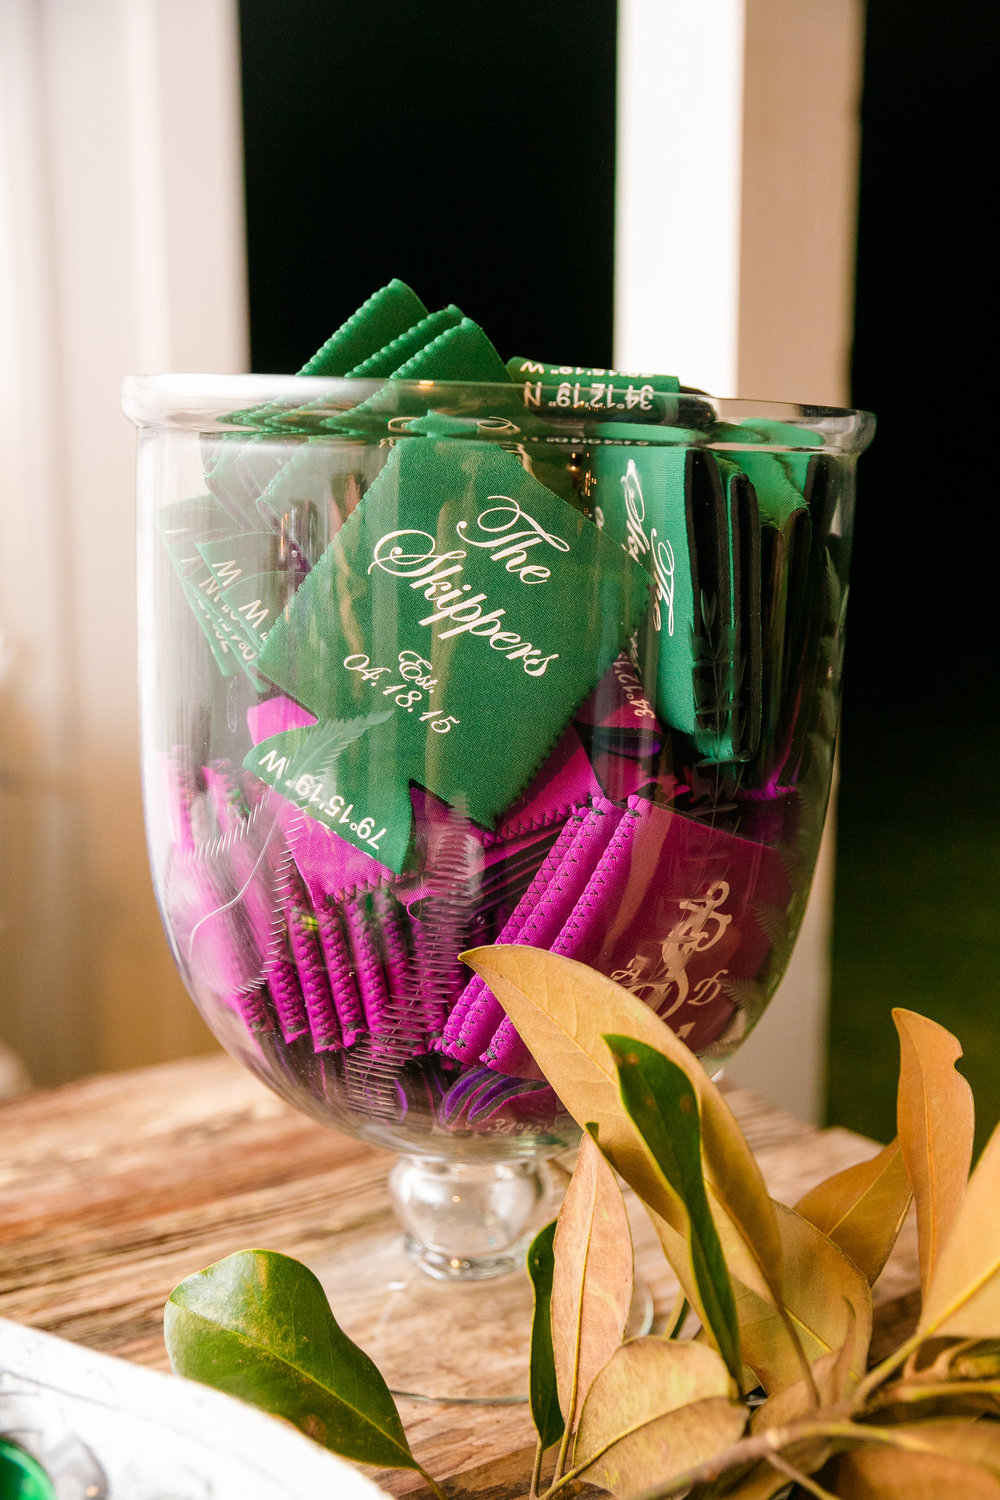 nautical-koozies-with-wedding-logo-and-longitude-latitude-guest-favors-fuchsia-and-kelly-green-wedding-colors